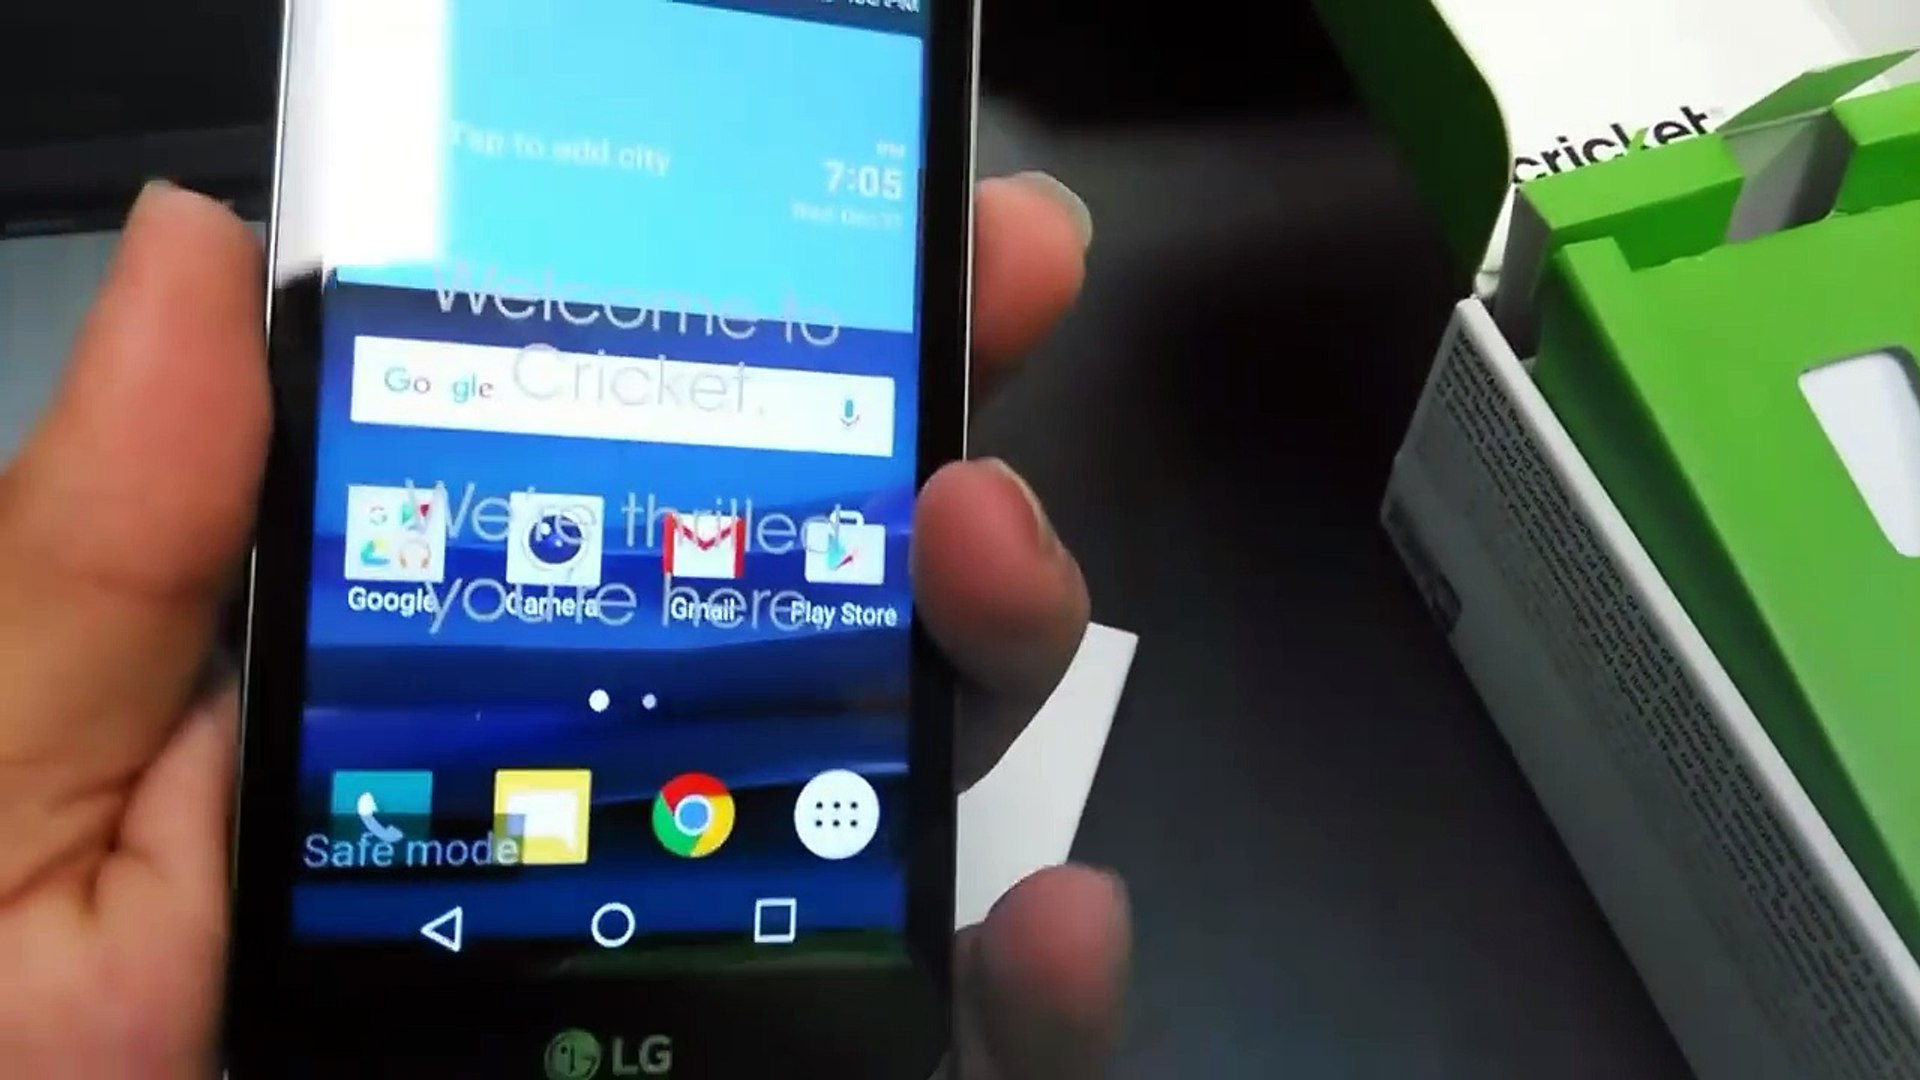 LG Spree: Unboxing, Review, First Look, Cricket Wireless MTR